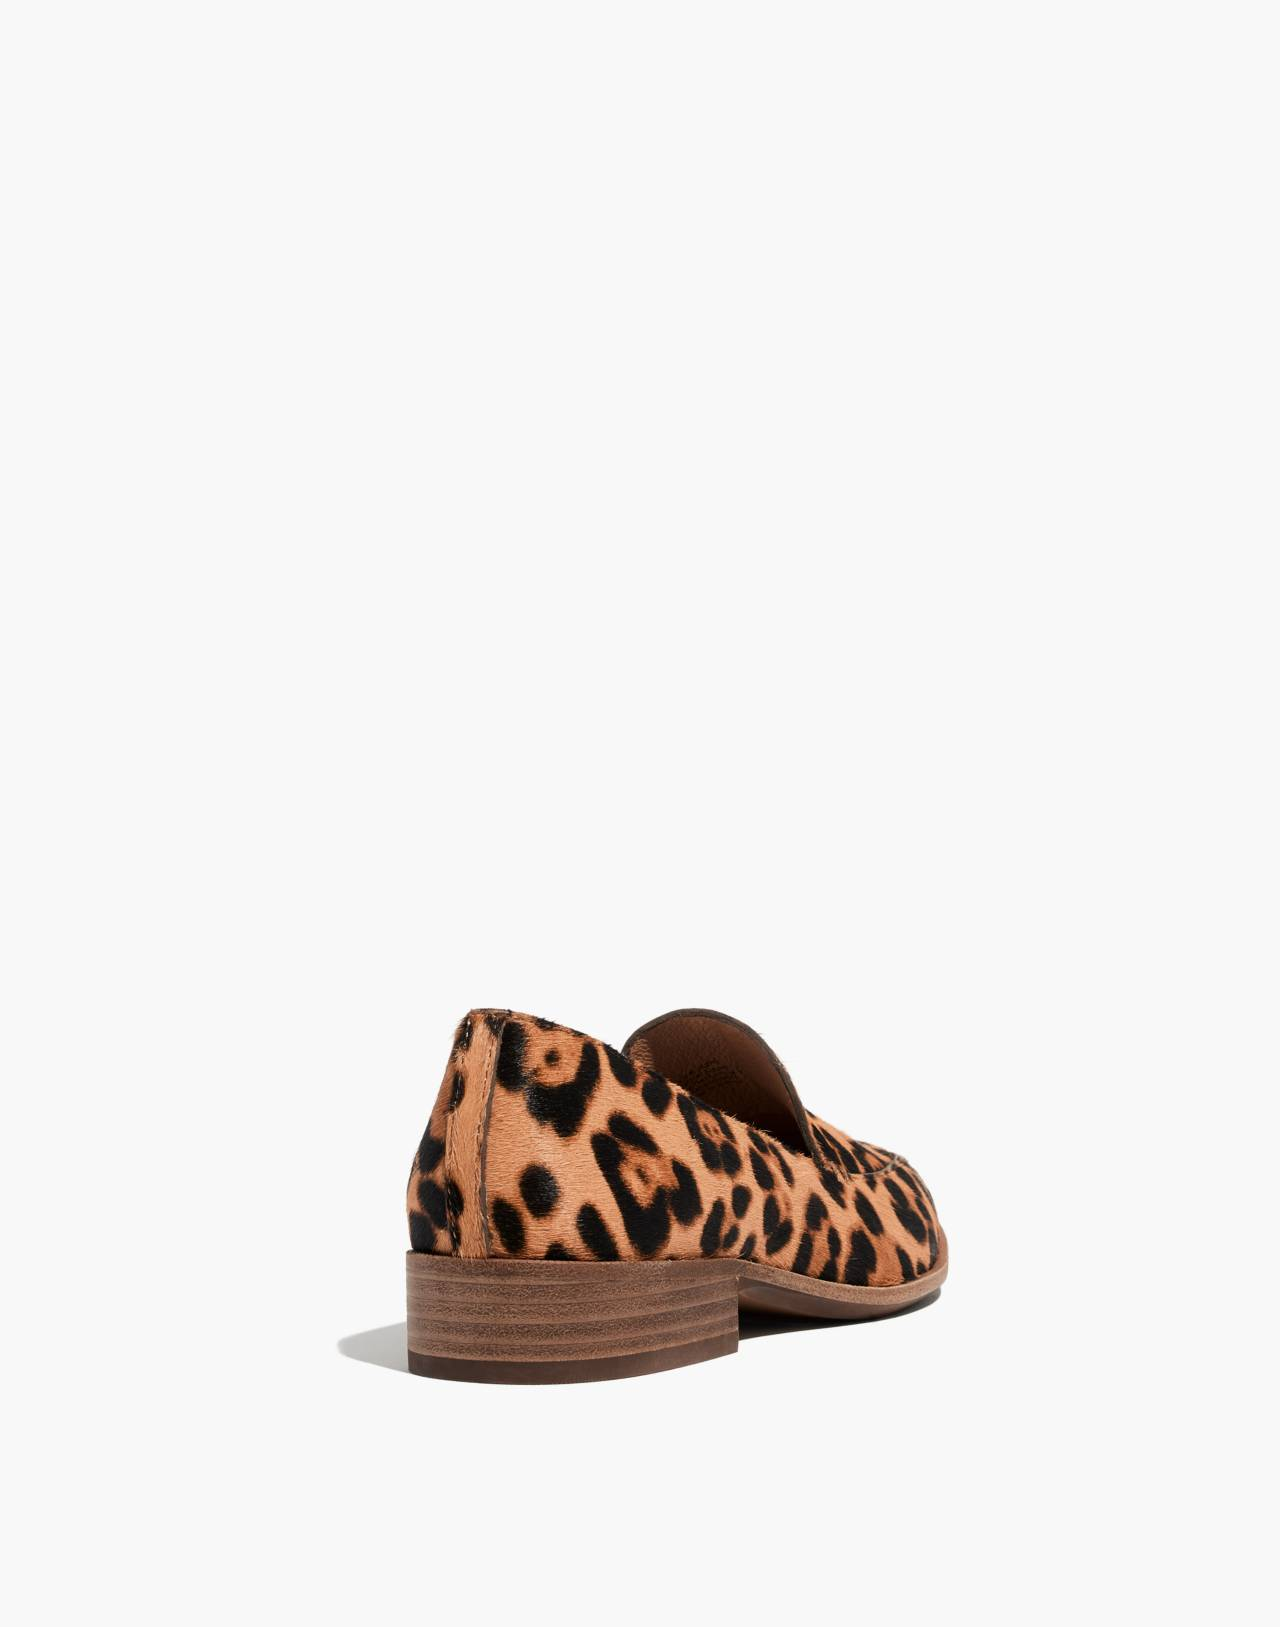 The Frances Loafer in Leopard Calf Hair in truffle multi image 4